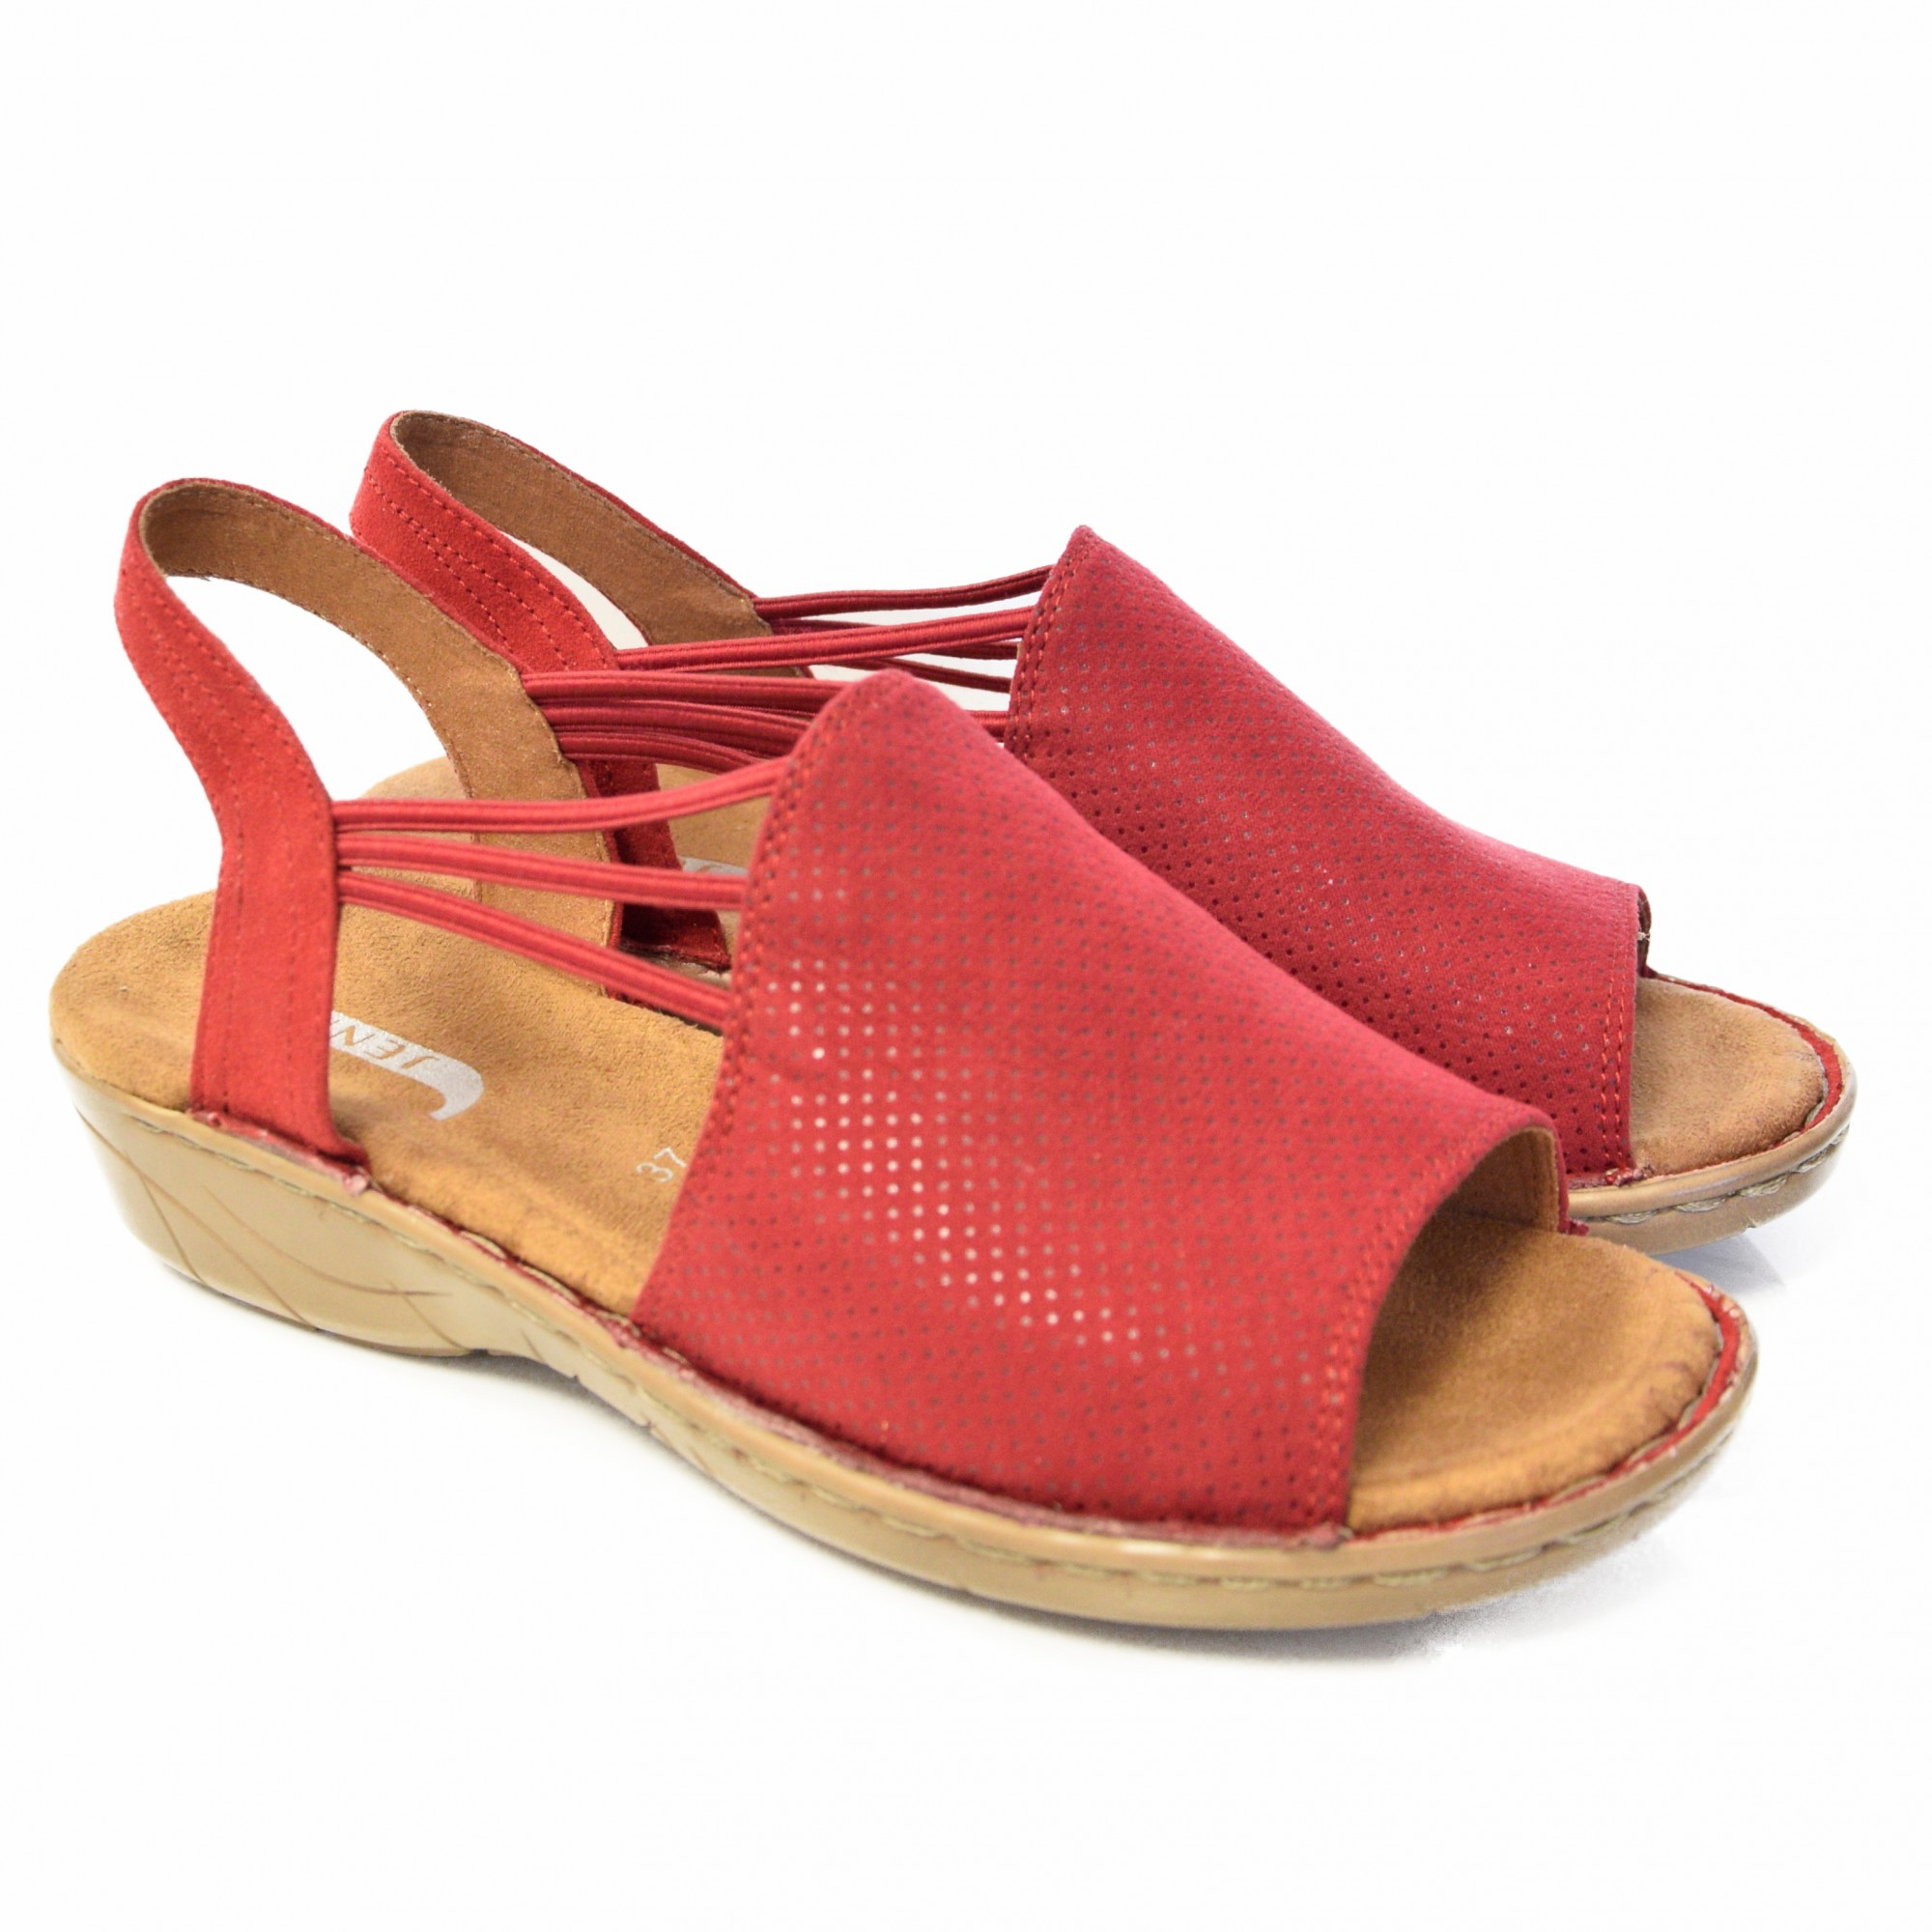 4fc309f3 JENNY BY ARA WOMEN'S SANDALS WITH ELASTIC CLOSURE RED | SanitariaWeb